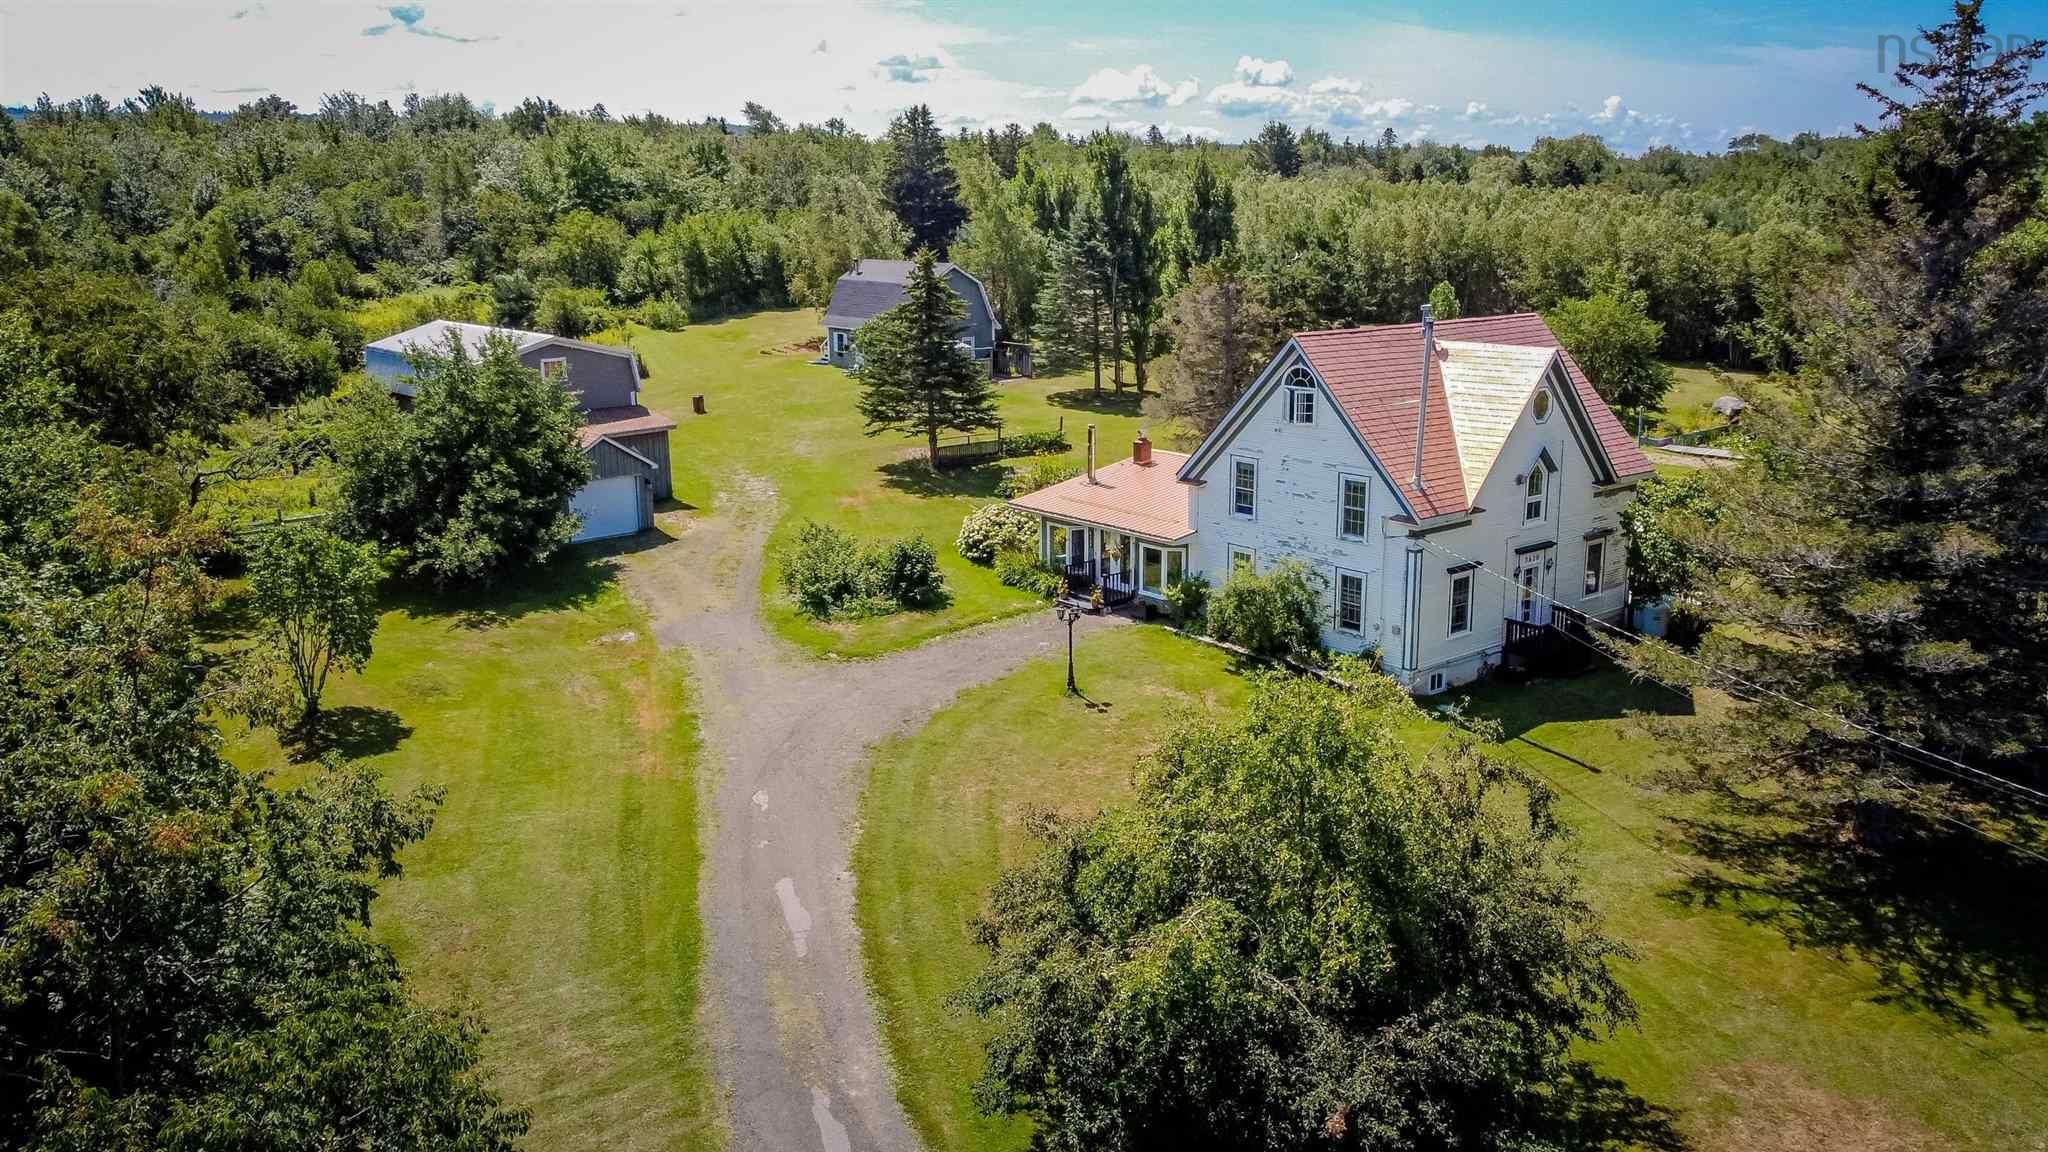 Main Photo: 3620 Highway 201 in Centrelea: 400-Annapolis County Residential for sale (Annapolis Valley)  : MLS®# 202120462